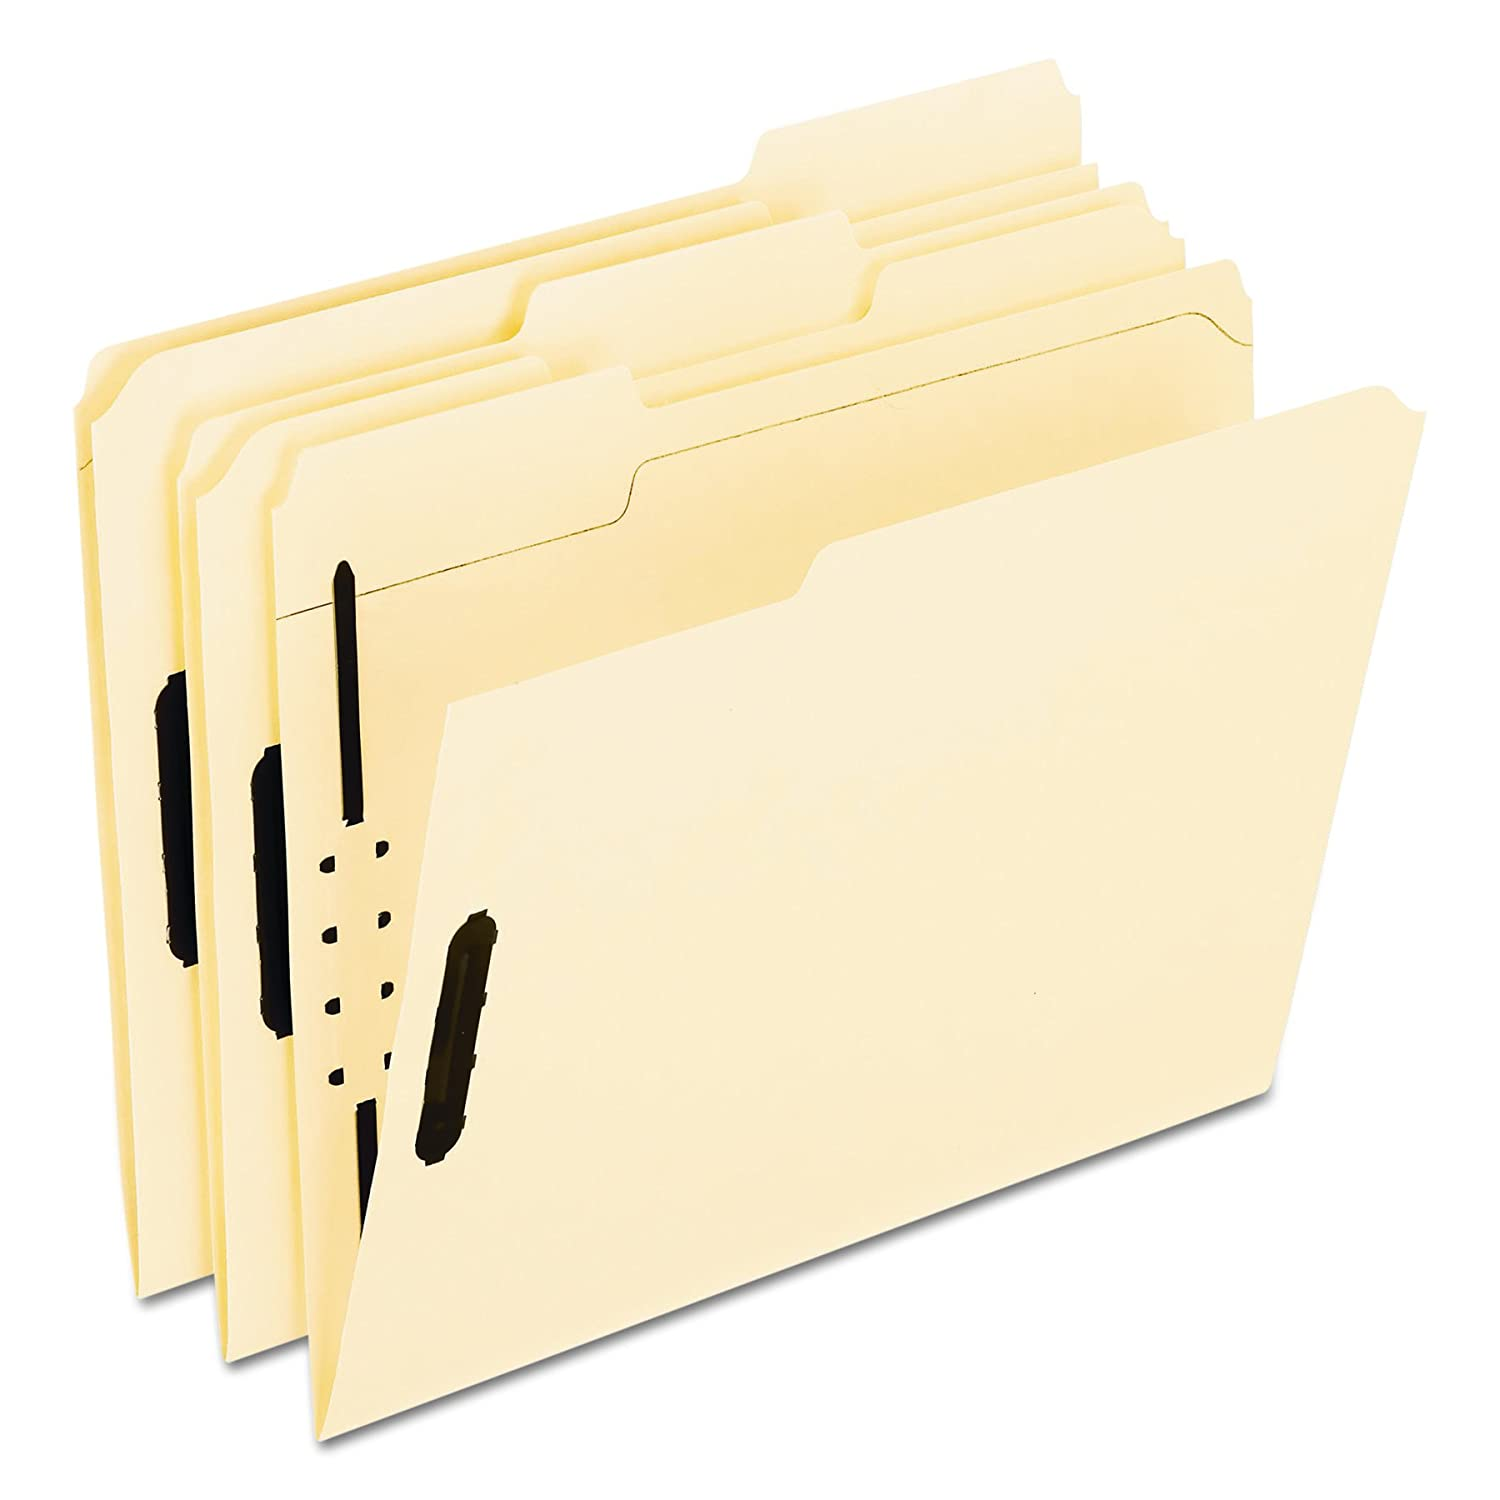 Pendaflex MLA 2-Fastener Classification Folders with 1/3-Cut Tabs 50 Pack (FM213) Esselte Corporation